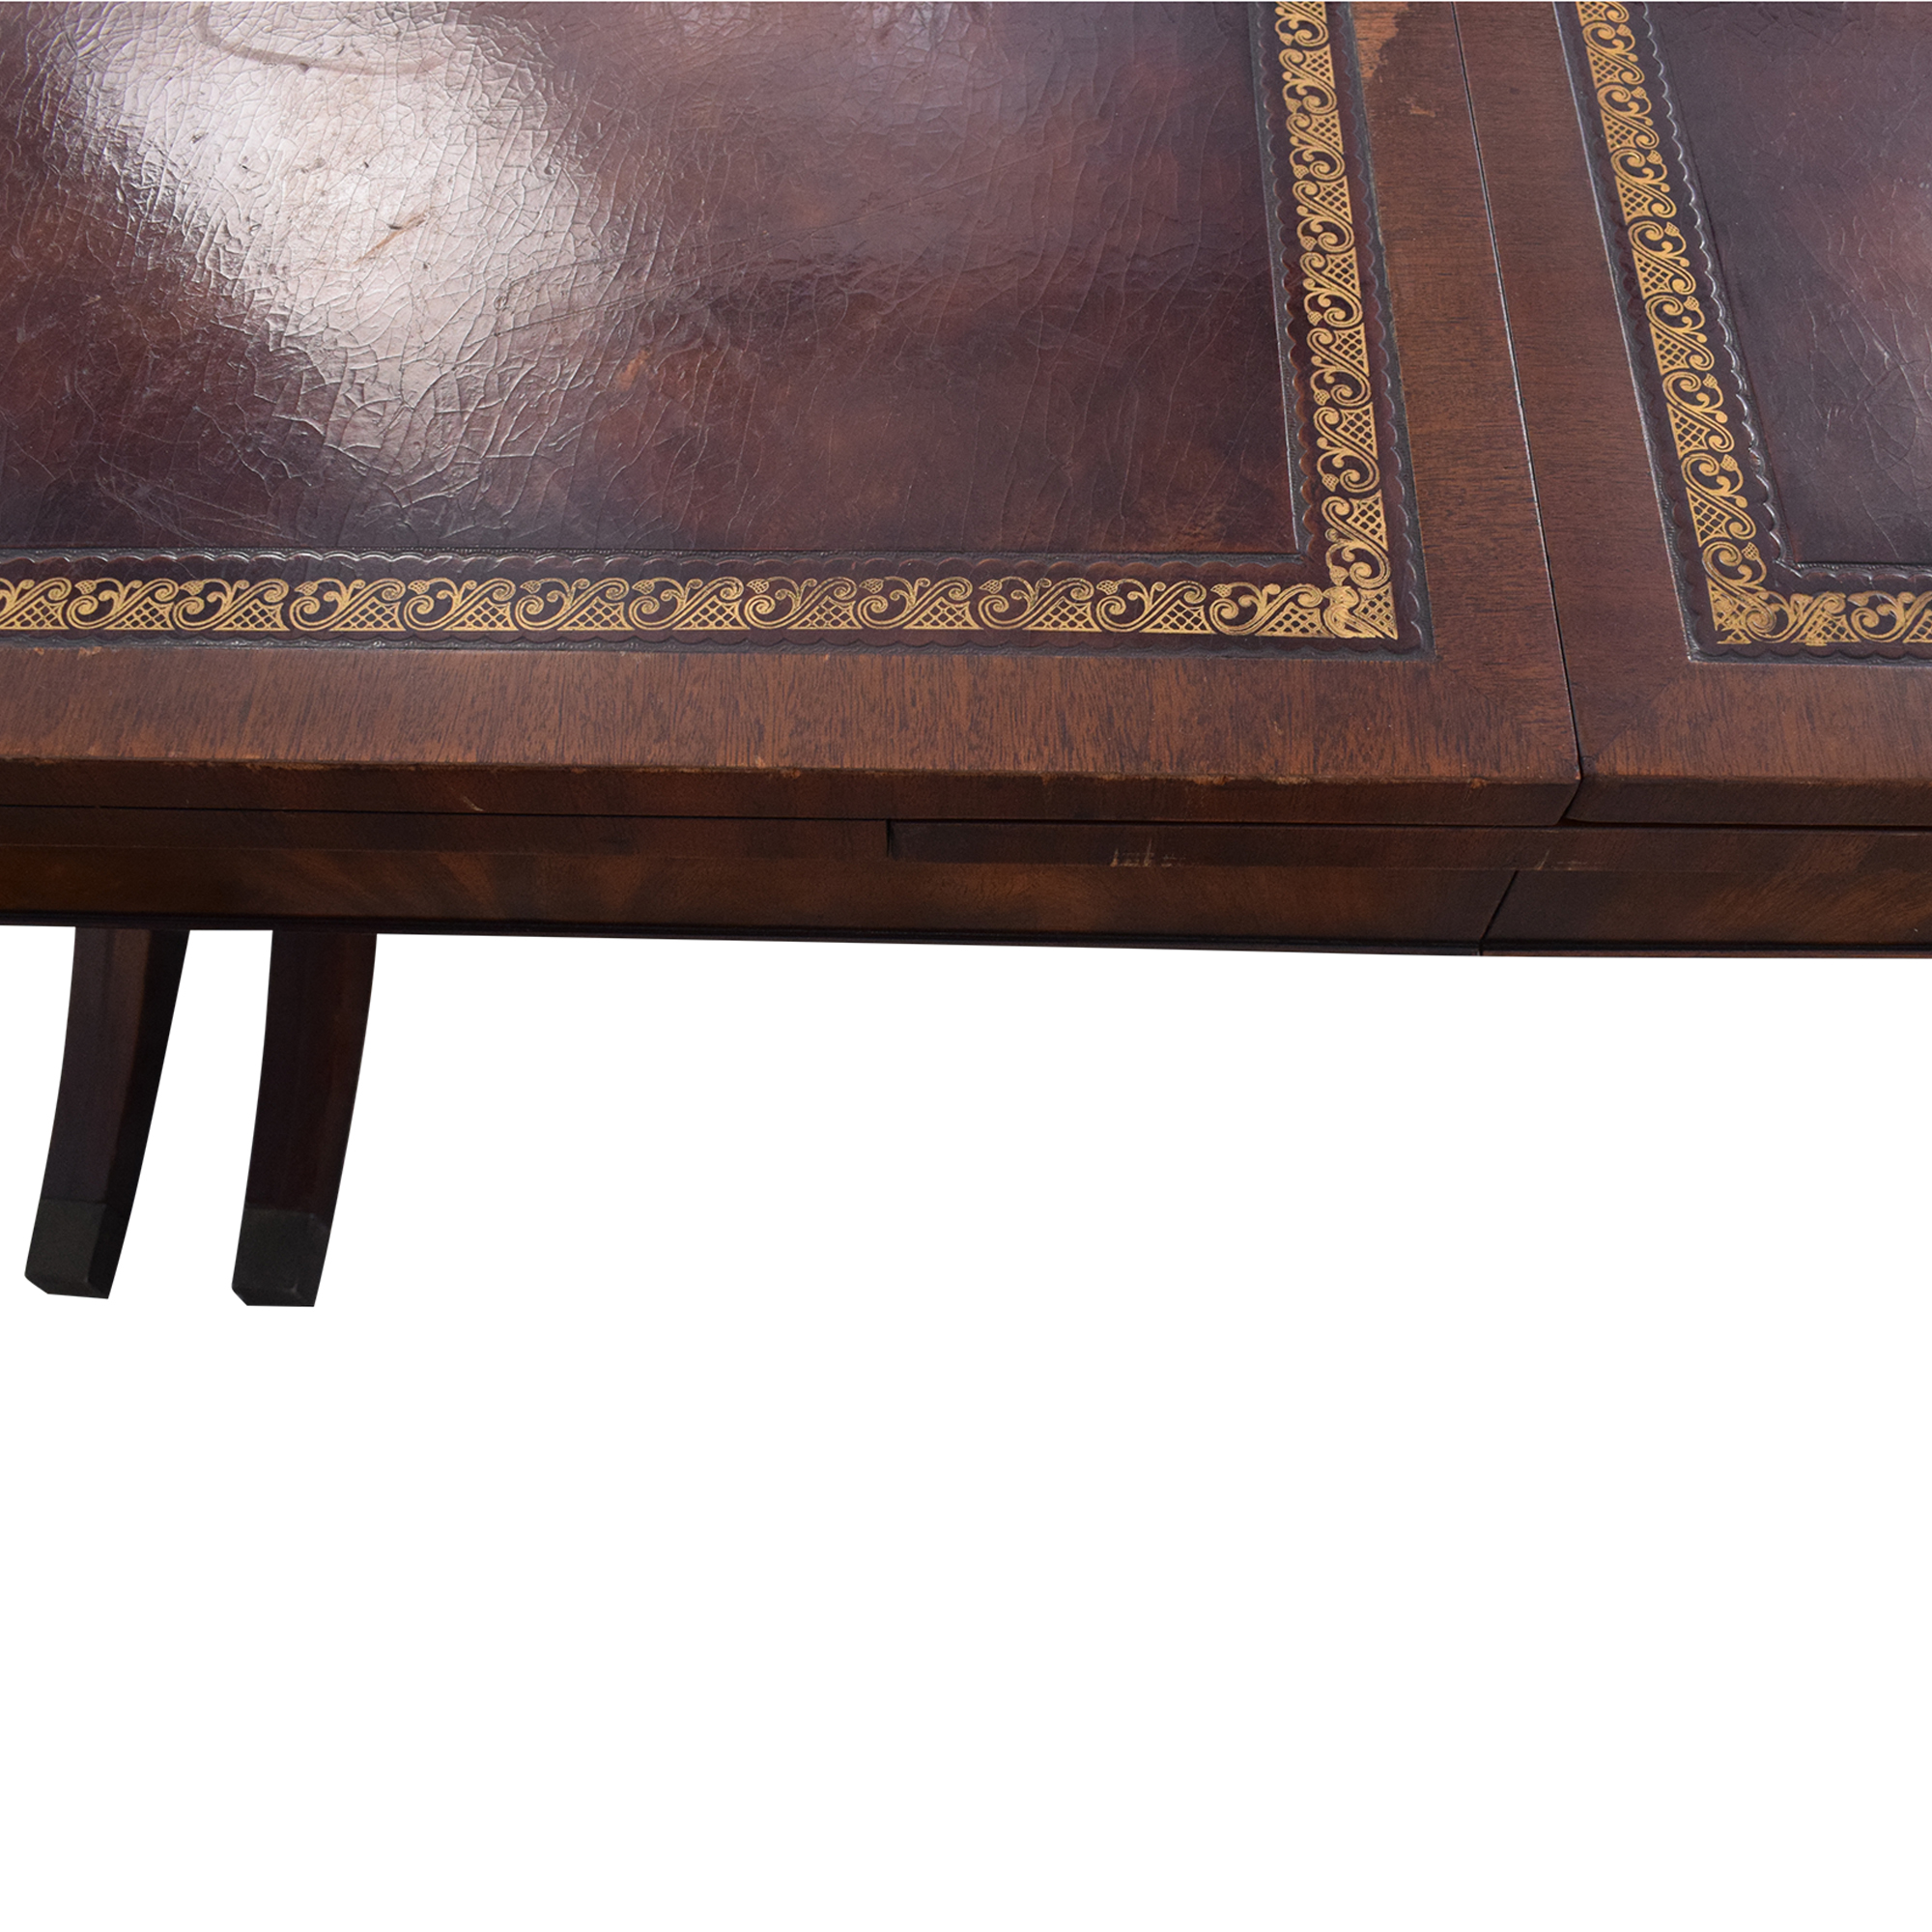 Heirloom Weiman Extendable Coffee Table used